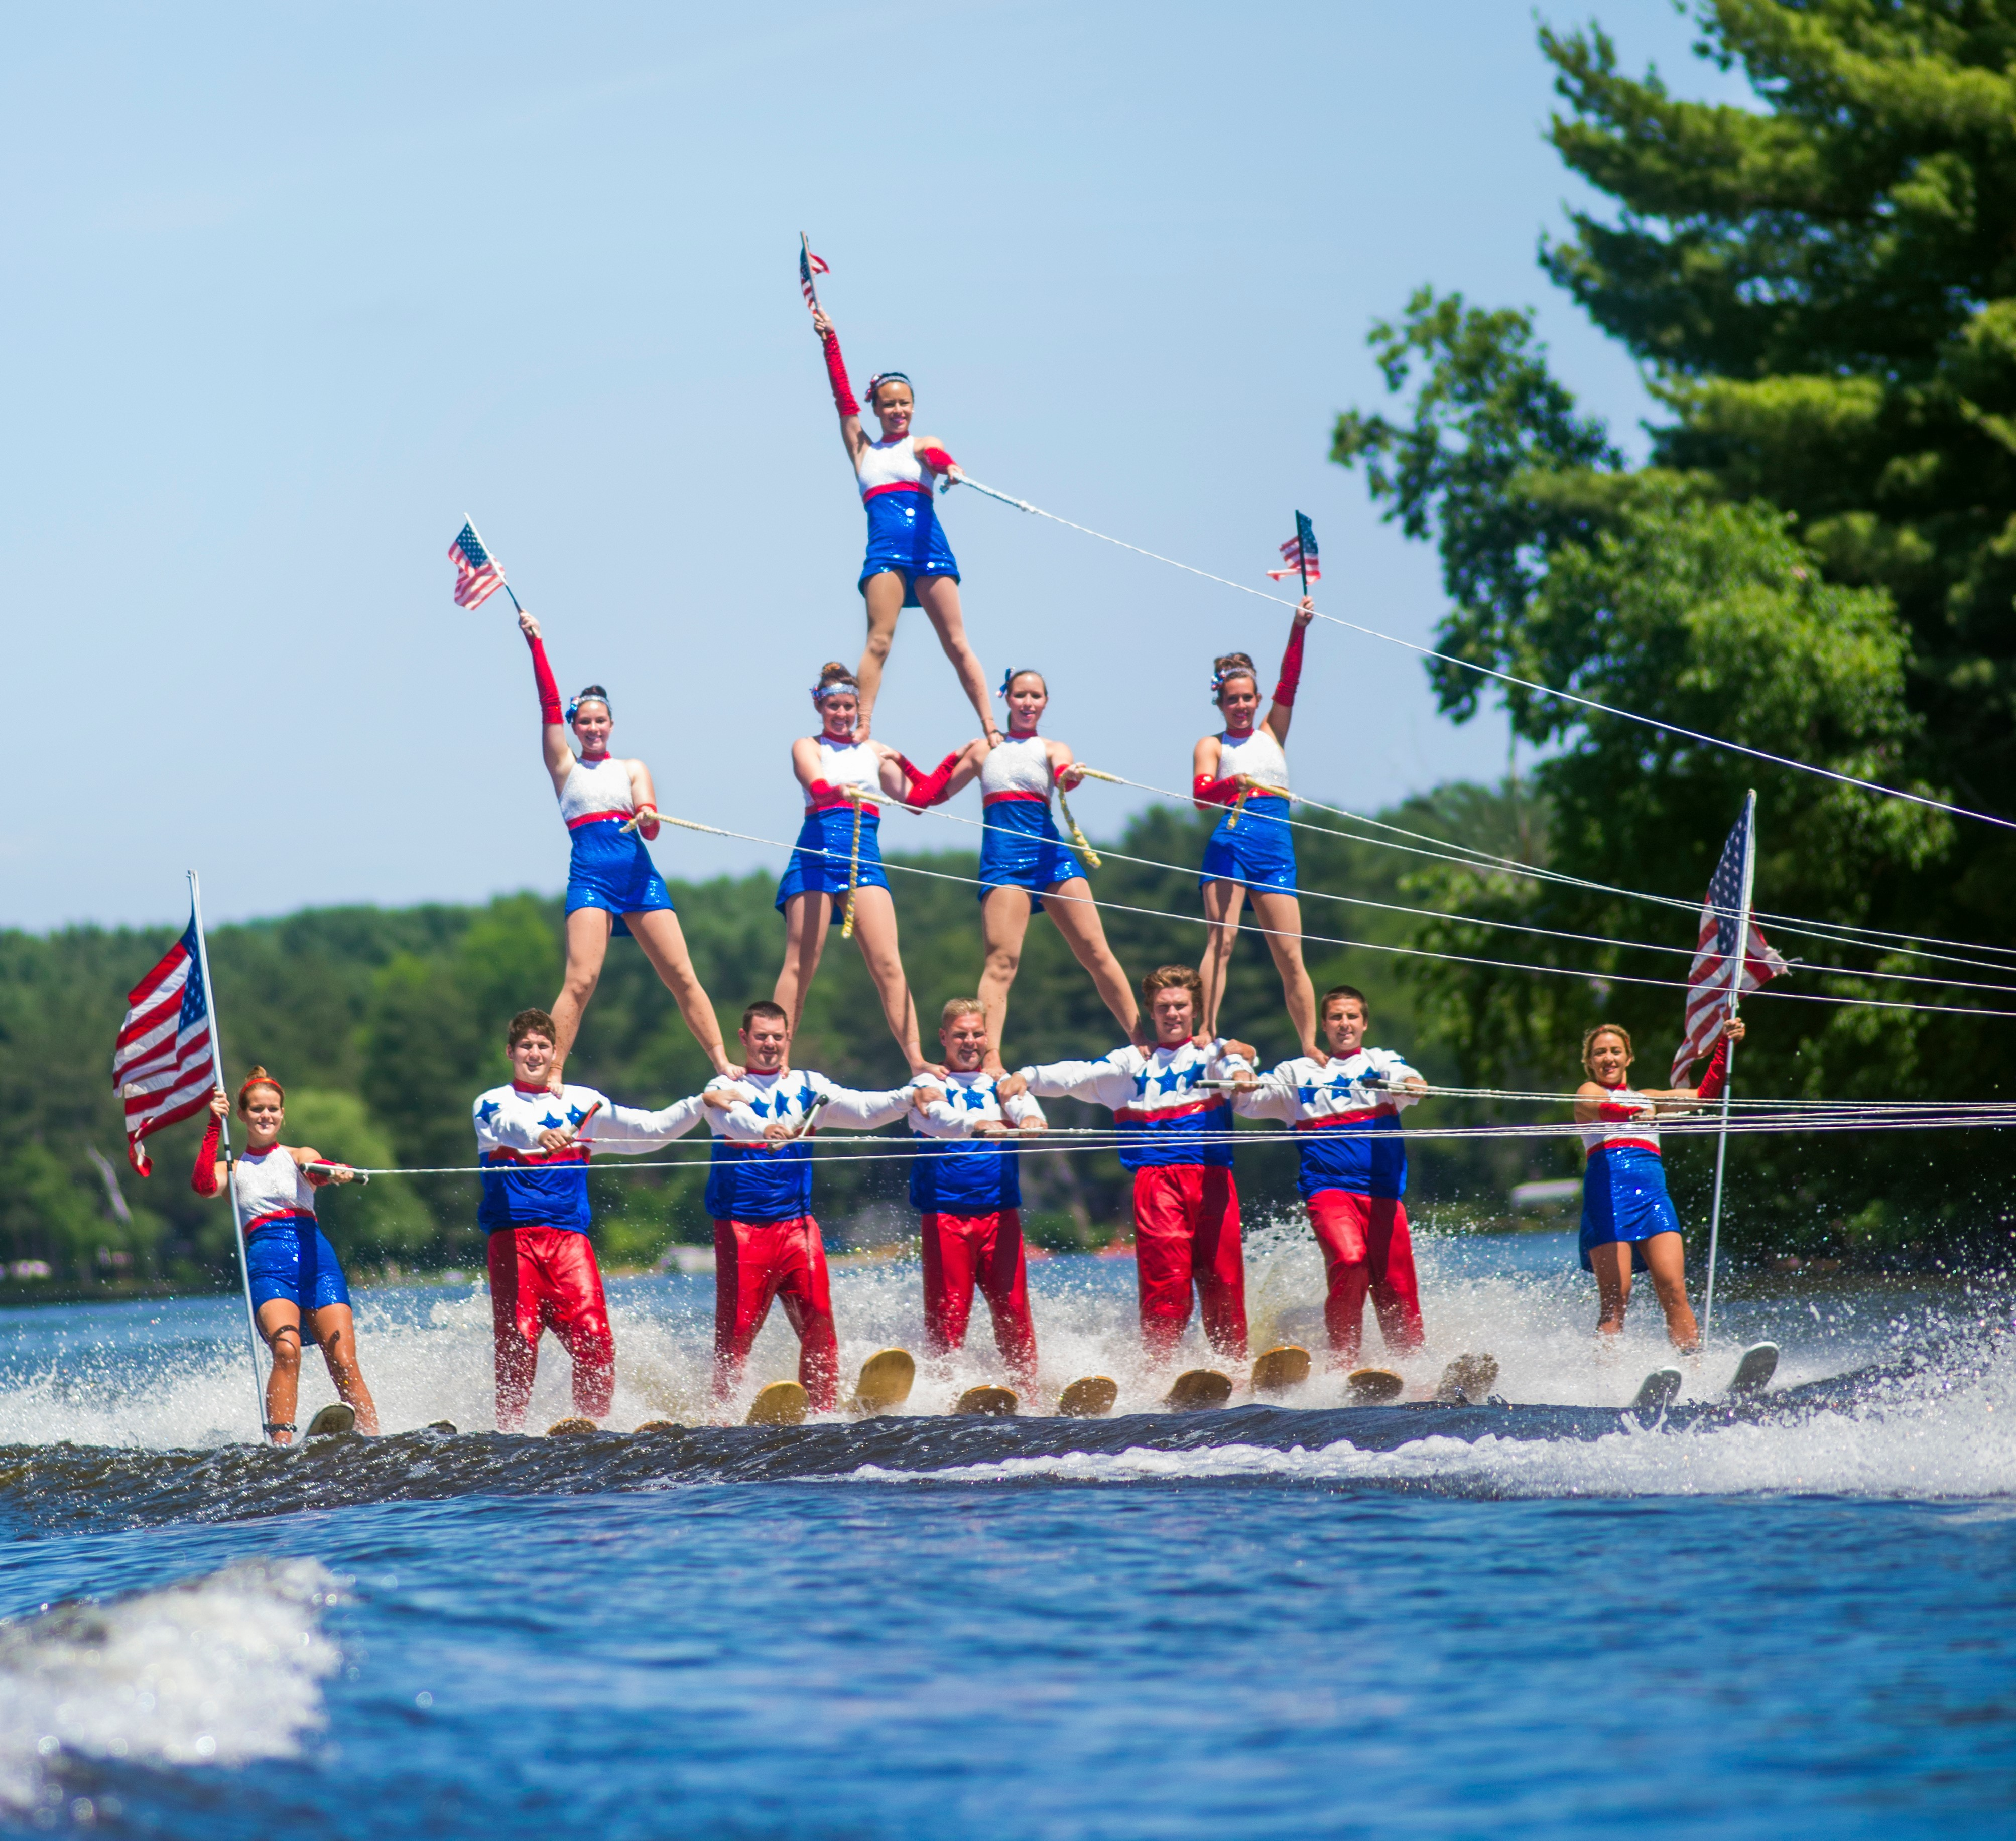 The classic water ski pyramid is performed by members of the Tommy Bartlett Water Show.